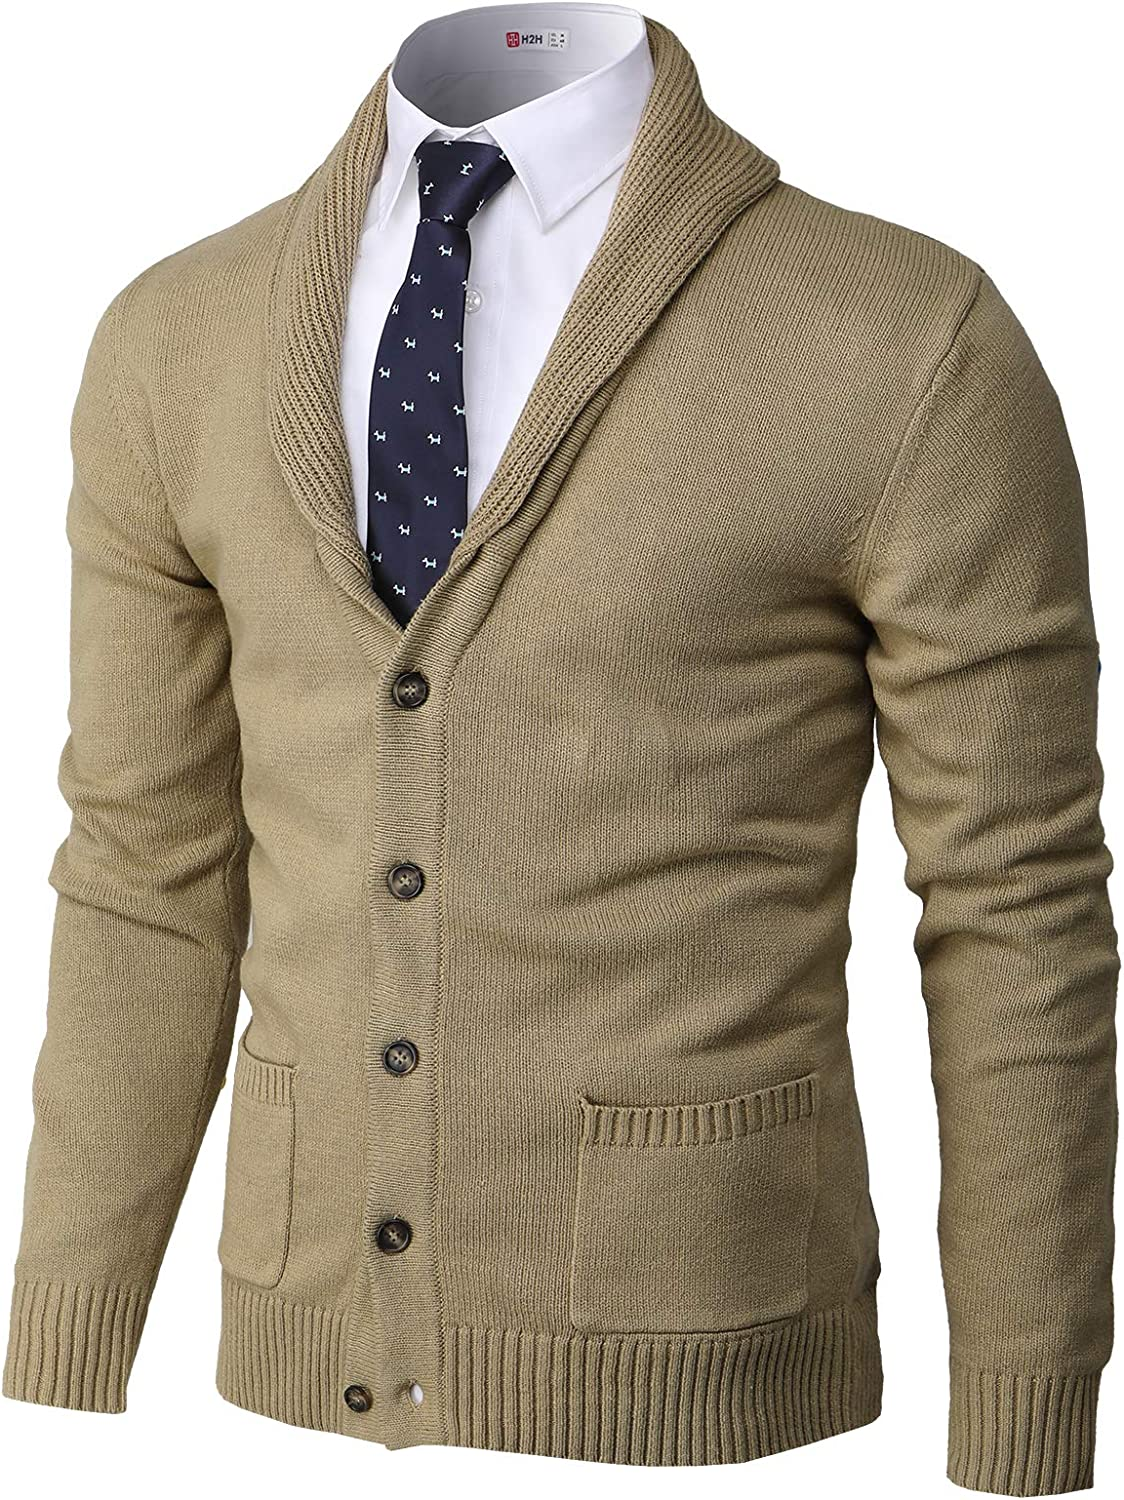 Mail order Tulsa Mall H2H Mens Casual Comfortable Fit Sweater Cardigan Shawl So Collar